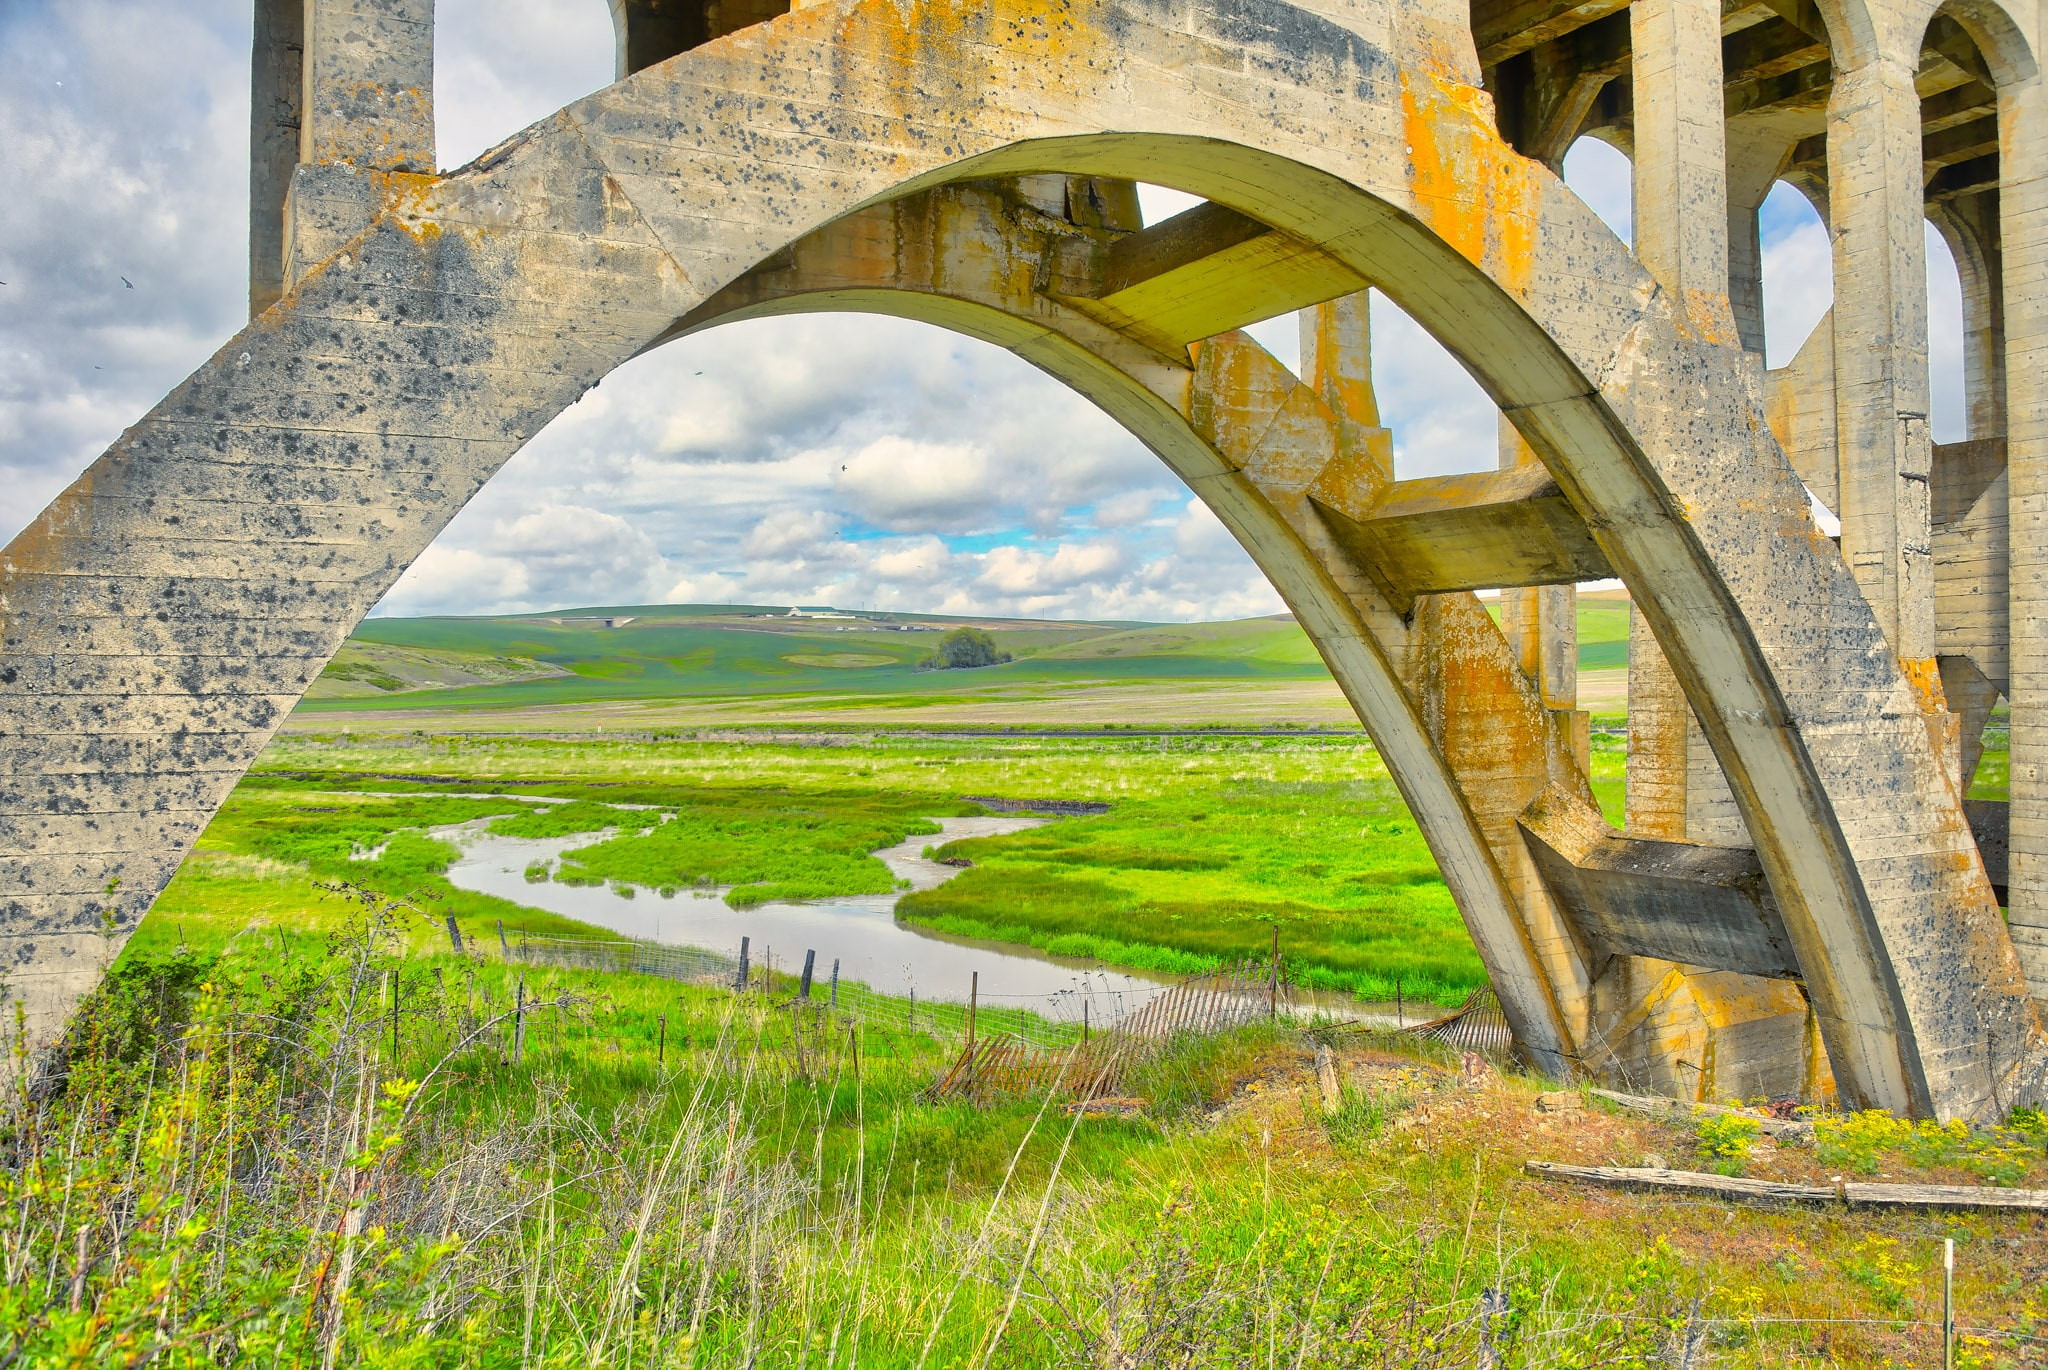 This is a detail shot of the Rosalia Railroad Bridge located just outside Rosalia, in the Palouse region of eastern Washington.